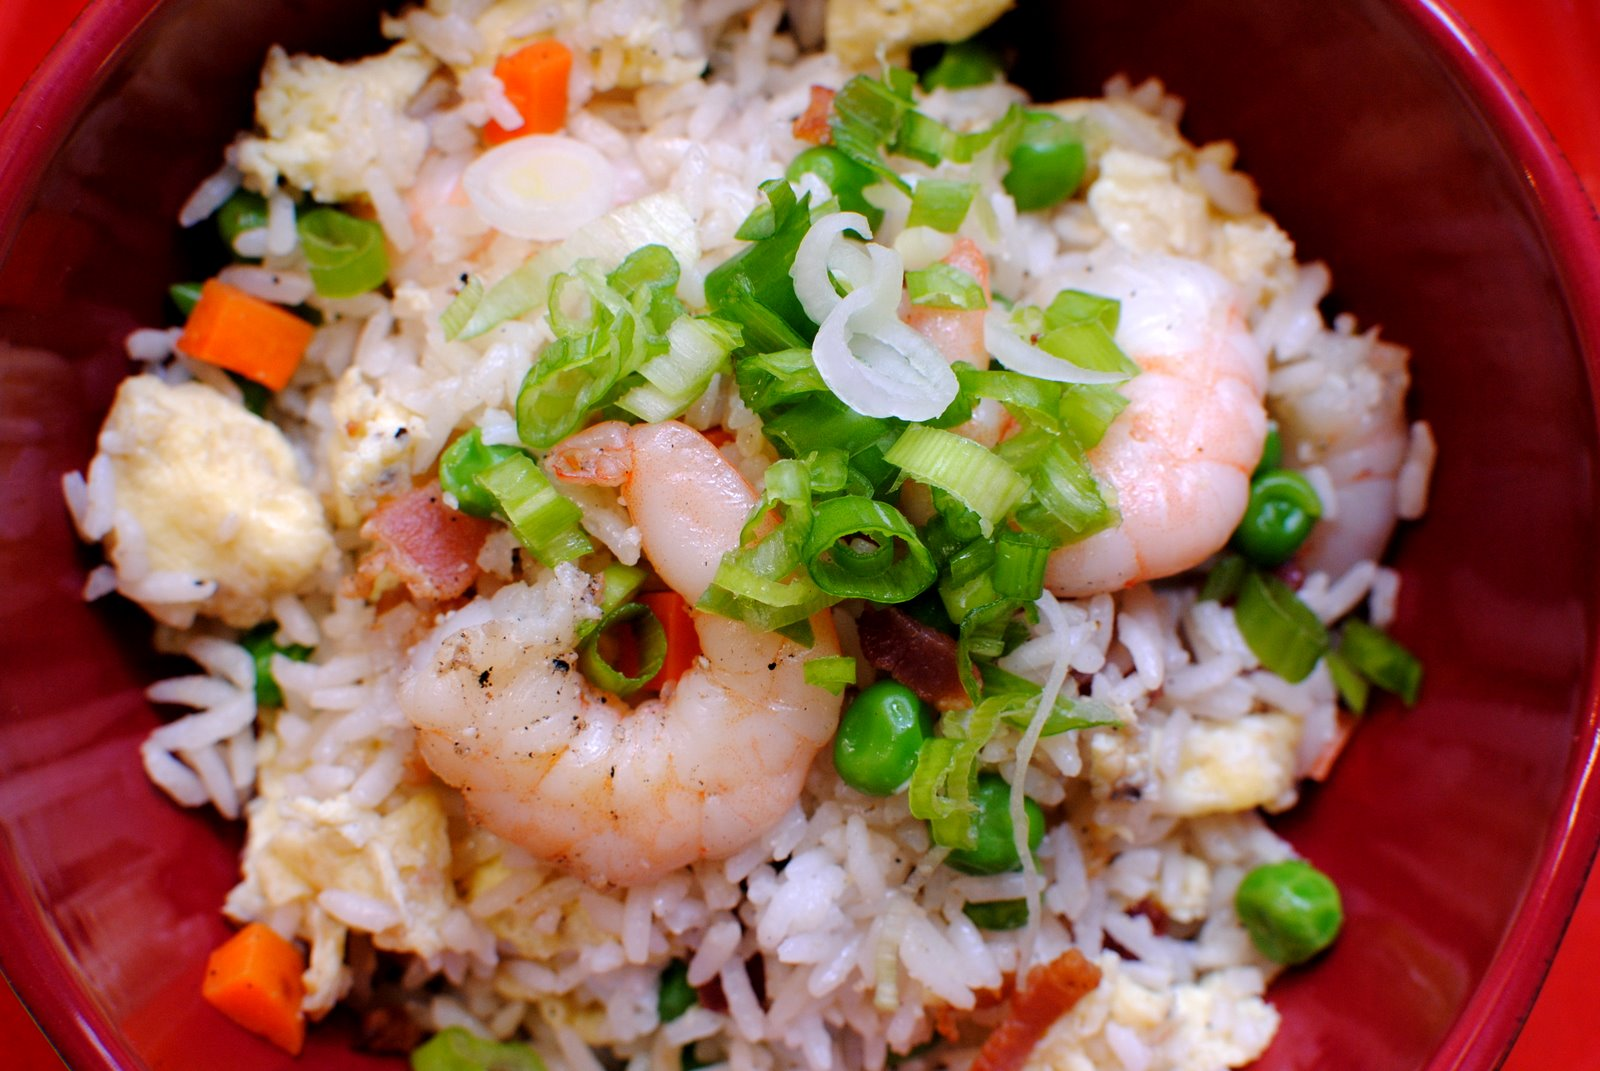 +The Church Cook: Shrimp Fried Rice